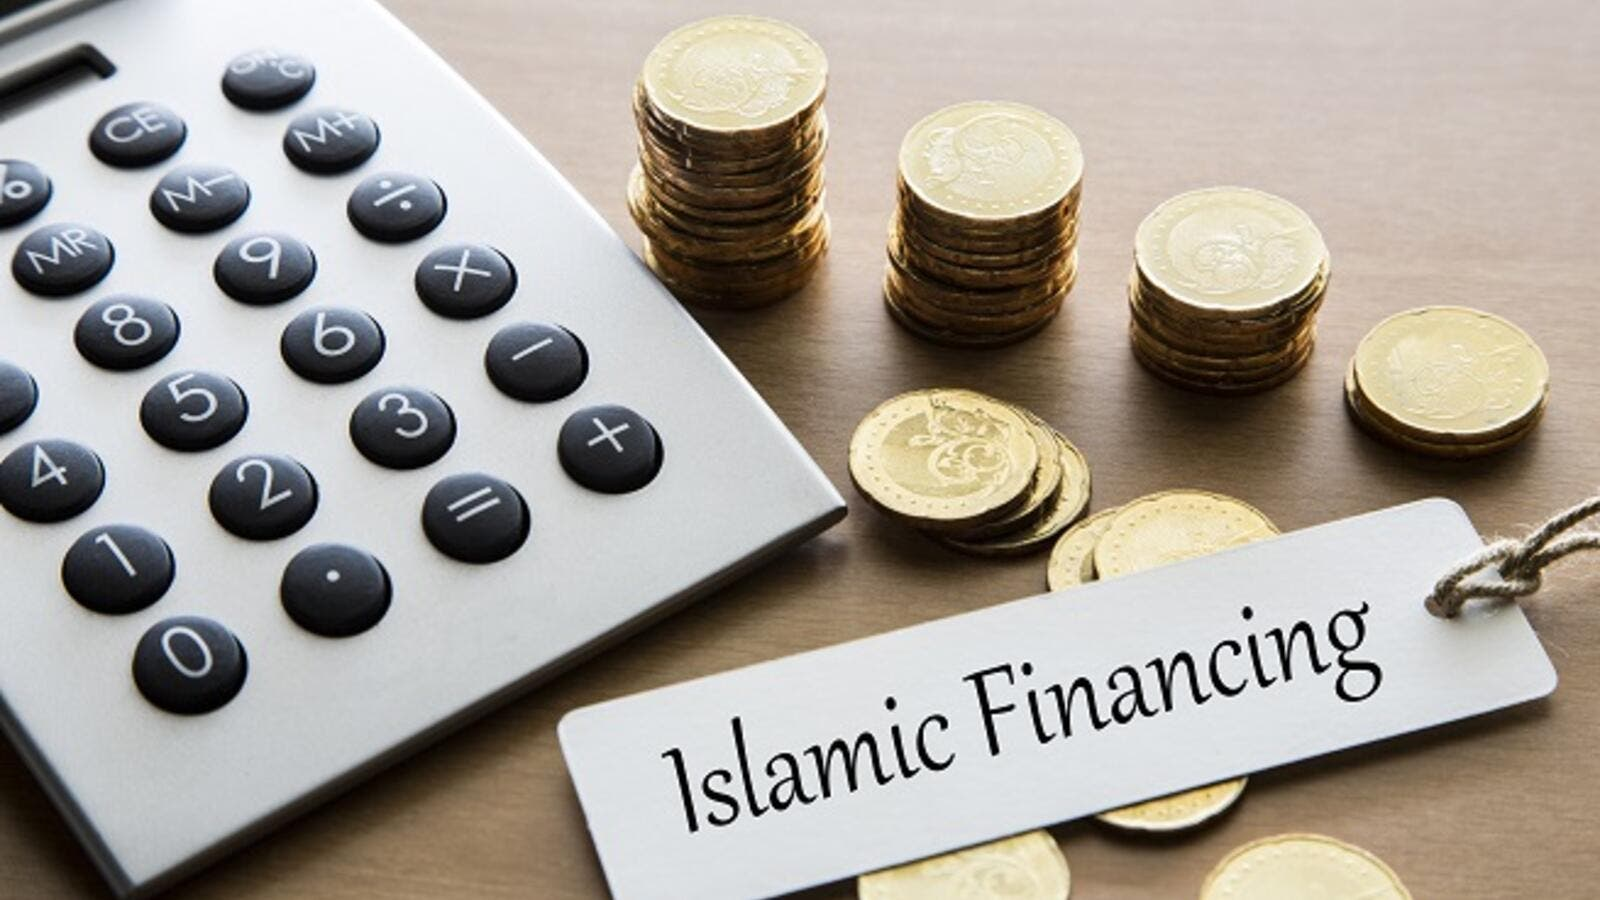 Islamic banking software refers to banking software that functions according to Shariah norms for managing and monitoring banking operations. (Shutterstock)